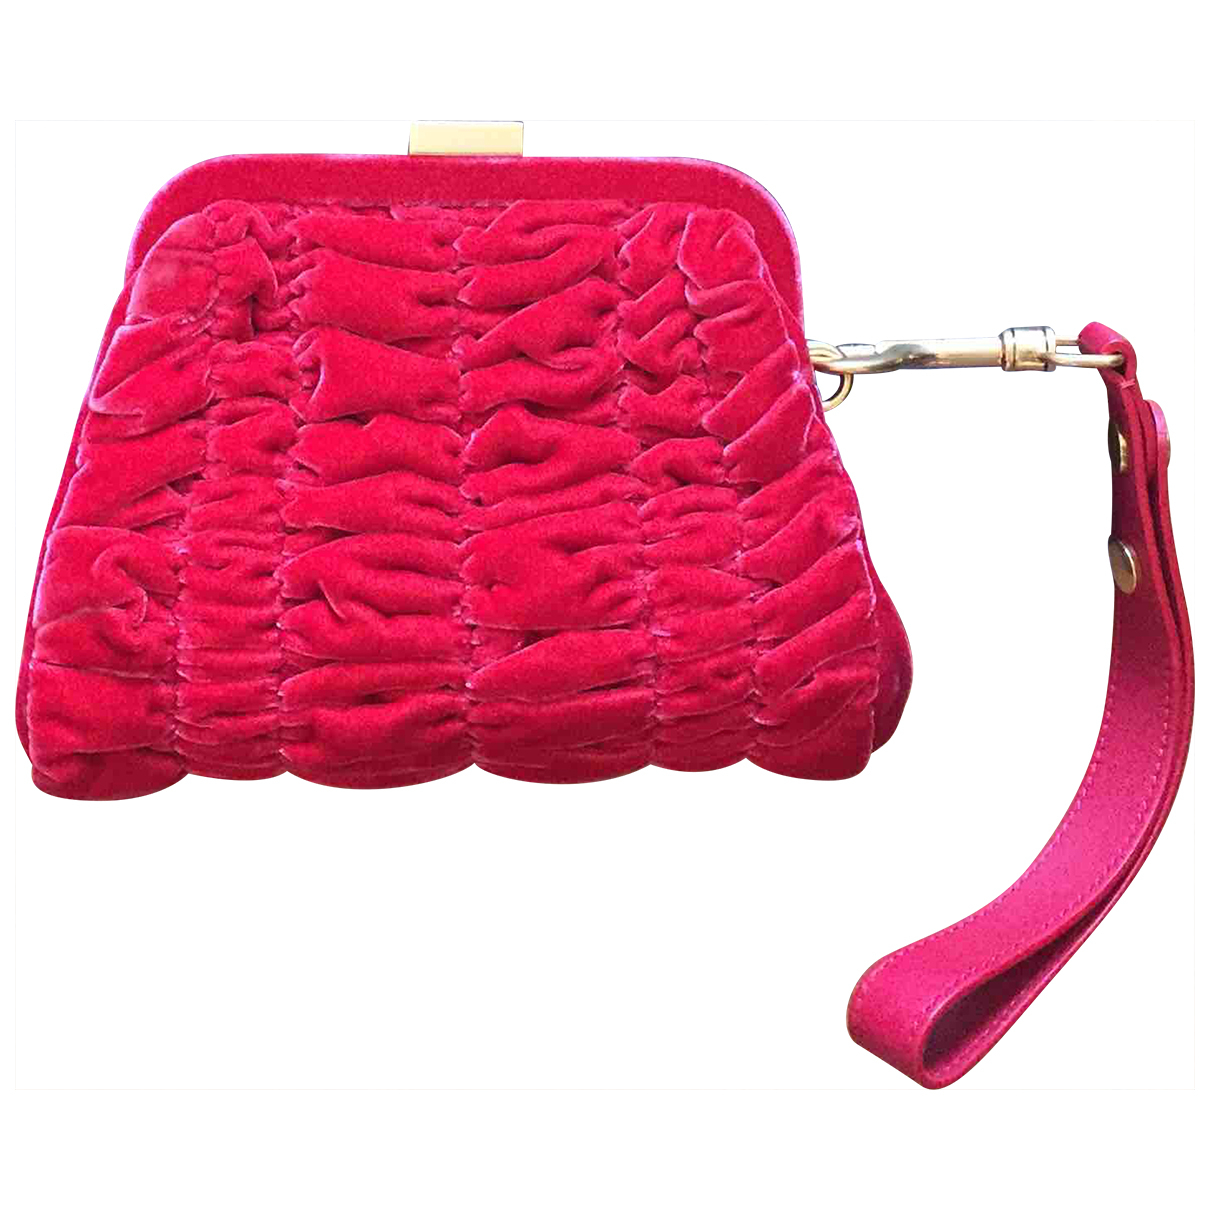 Tom Ford \N Clutch in  Rot Samt